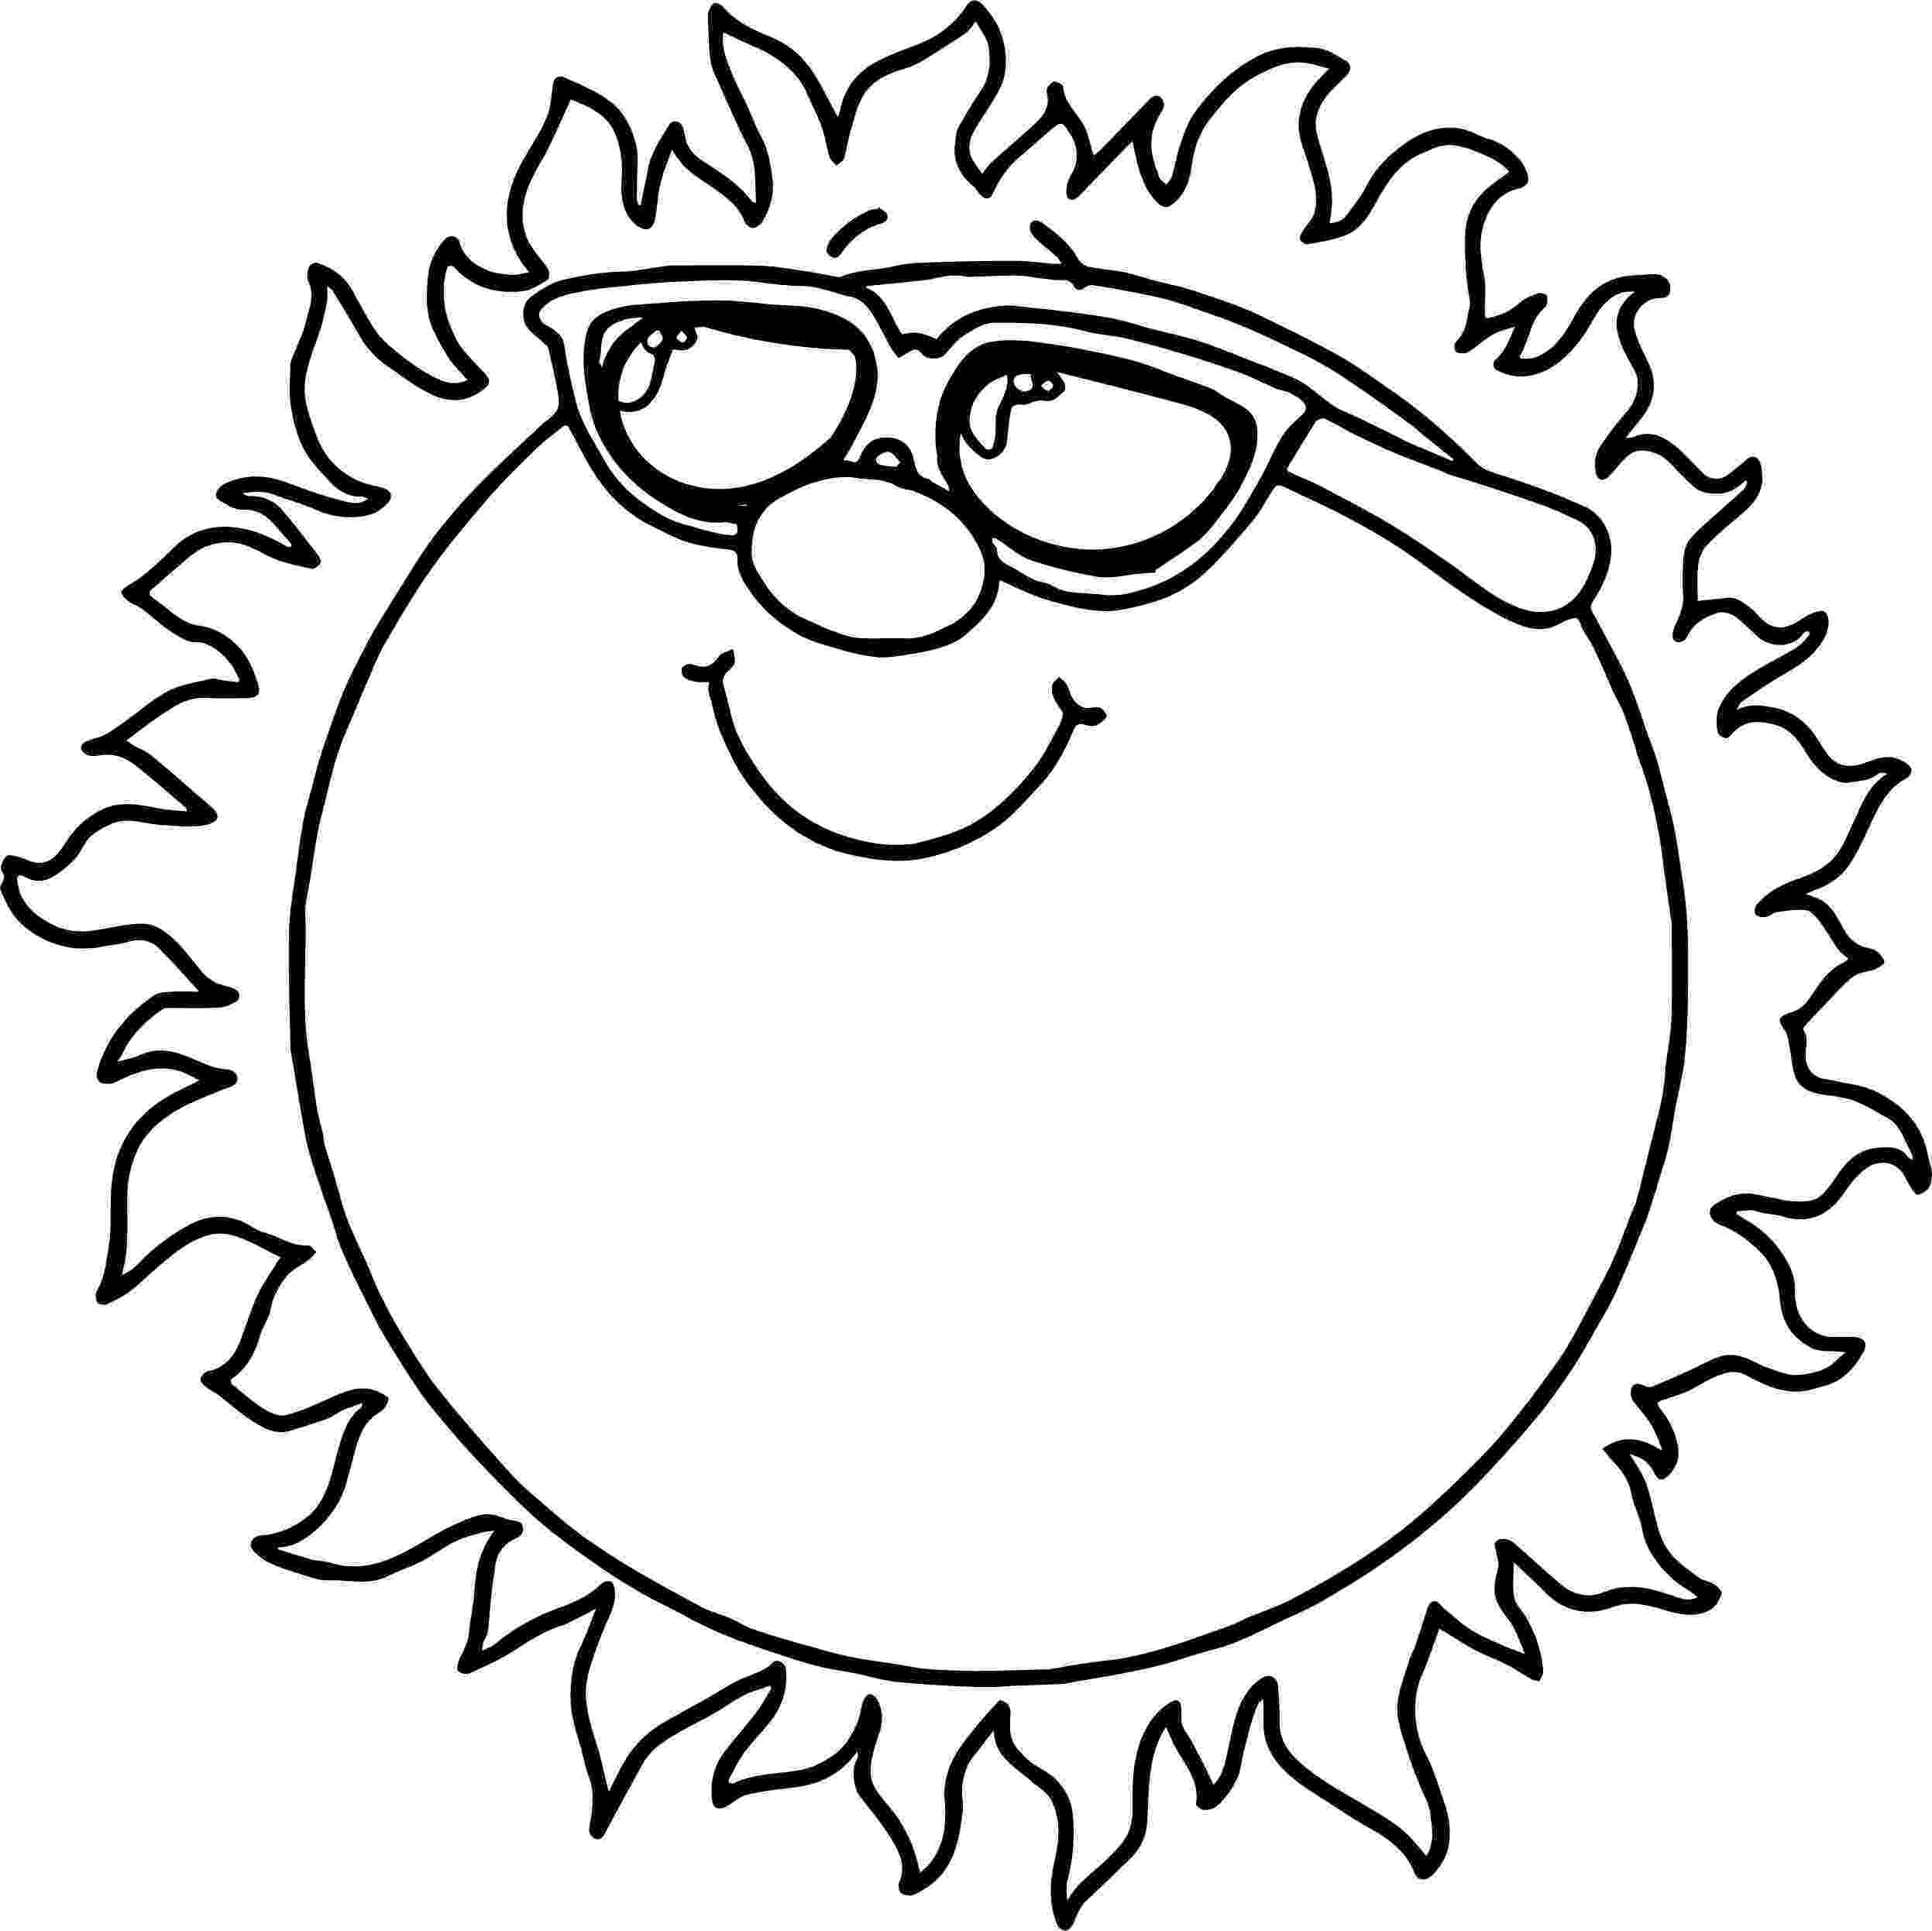 coloring book sun free printable sun coloring pages for kids cool2bkids coloring book sun 1 1